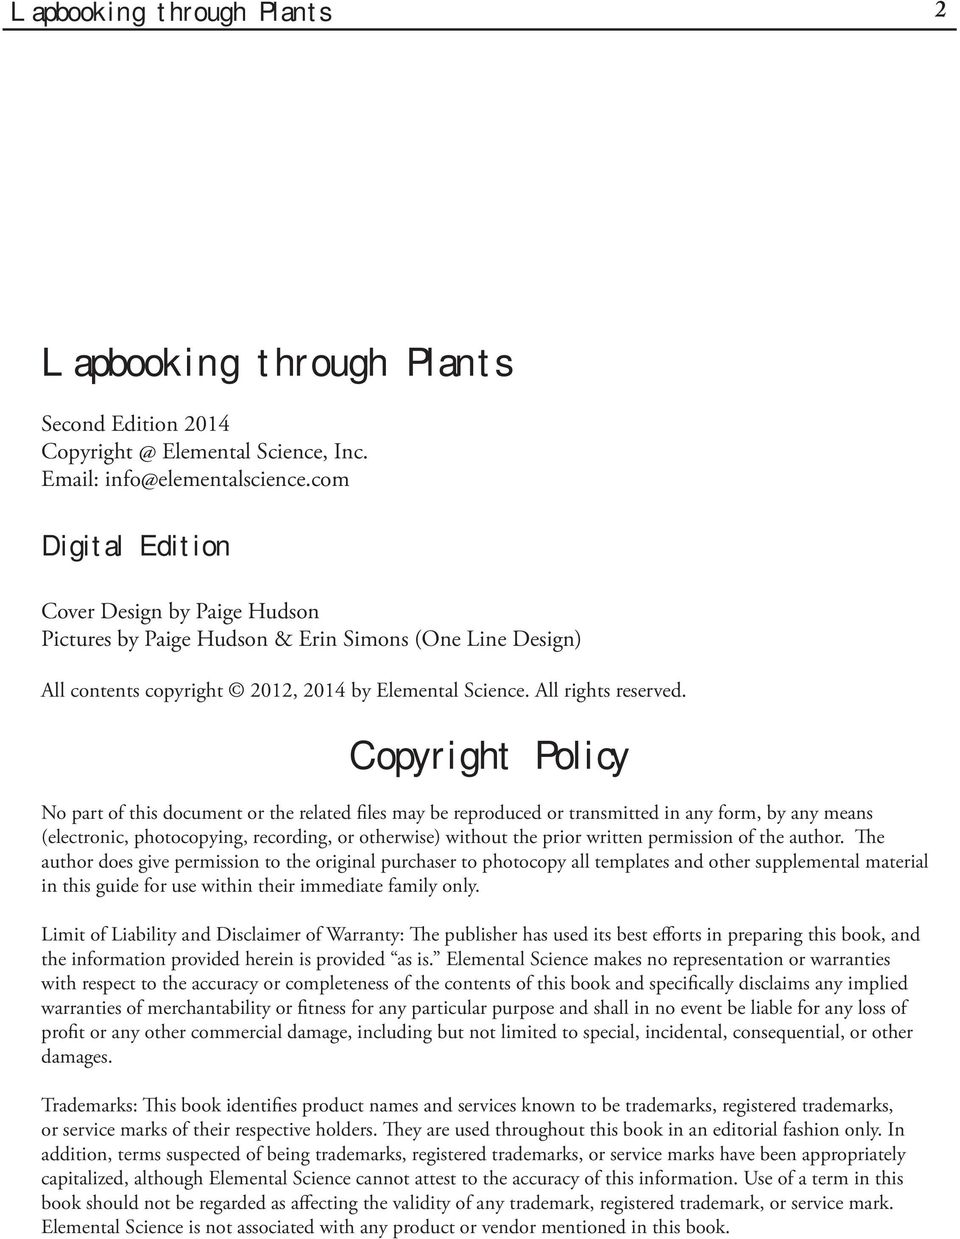 Copyright Policy No part of this document or the related files may be reproduced or transmitted in any form, by any means (electronic, photocopying, recording, or otherwise) without the prior written